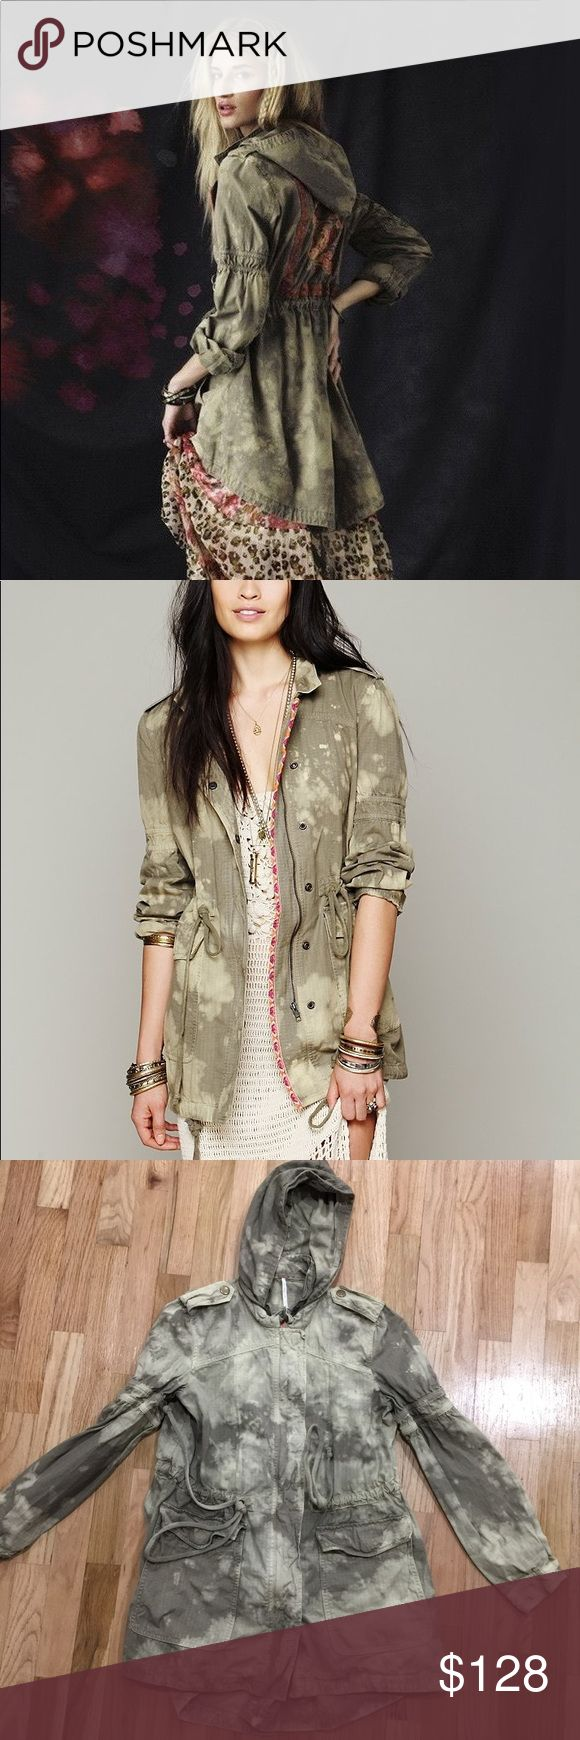 Free People embroidered festival anorak Like-new condition. Beautiful bleached tie dye embroidered festival anorak jacket Free People Jackets & Coats